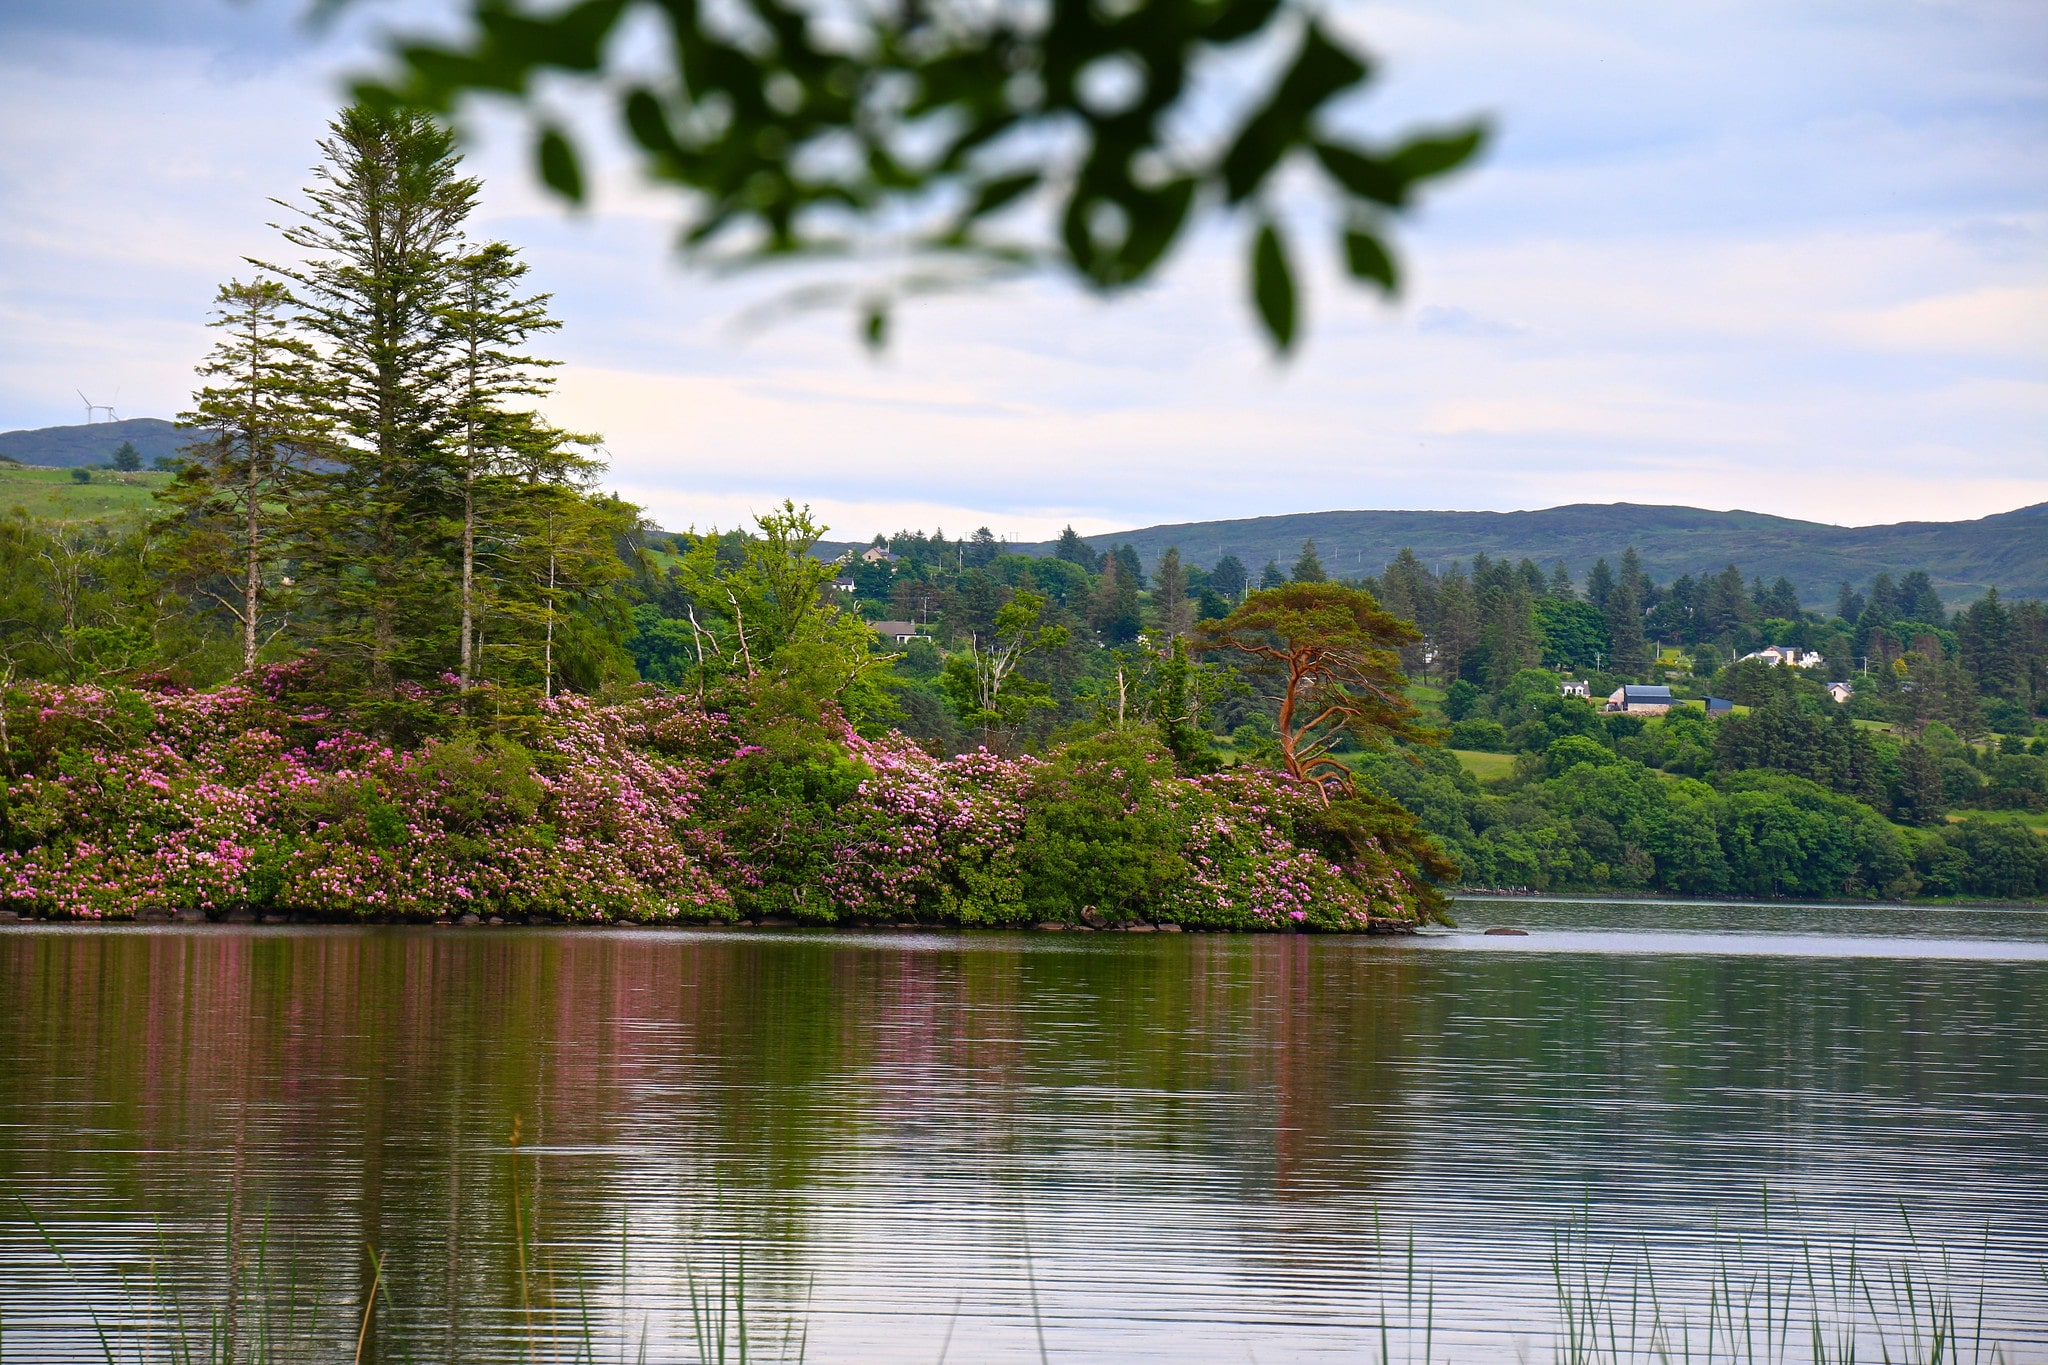 Exploring Lough Eske is an awesome thing to do in Donegal Ireland